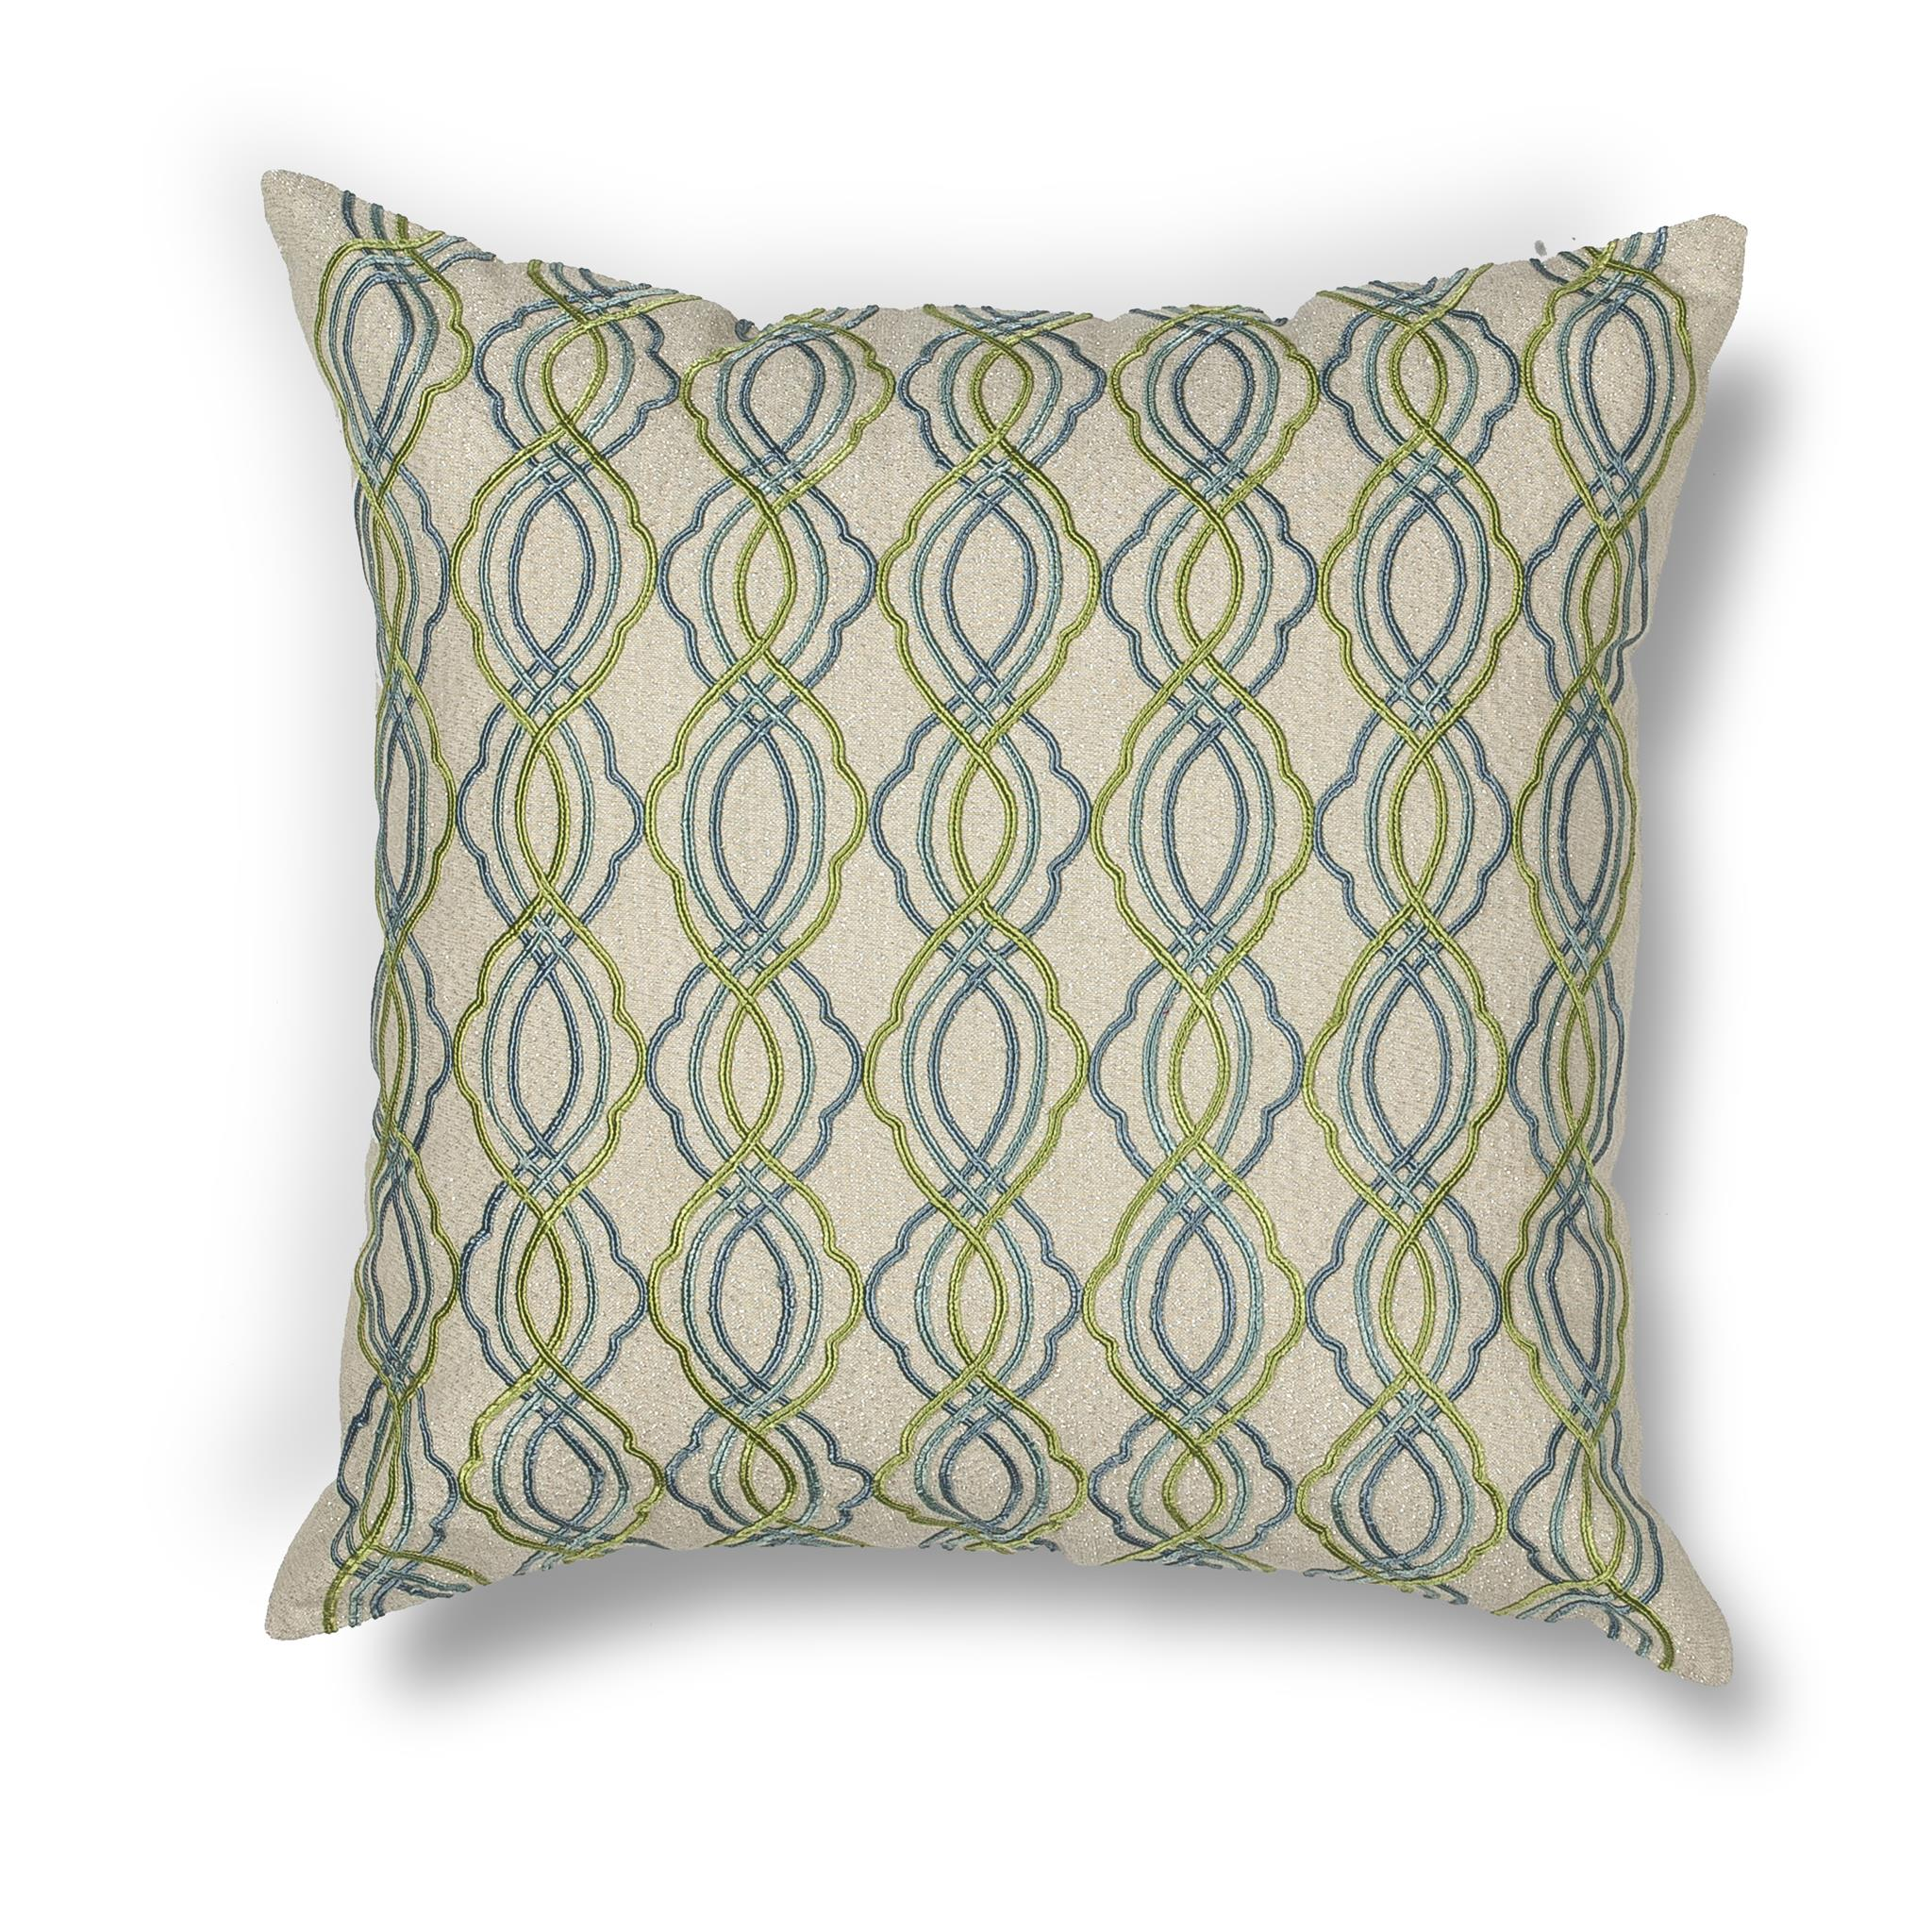 L195 Donny Osmond Home Blue-Green Waves Pillow